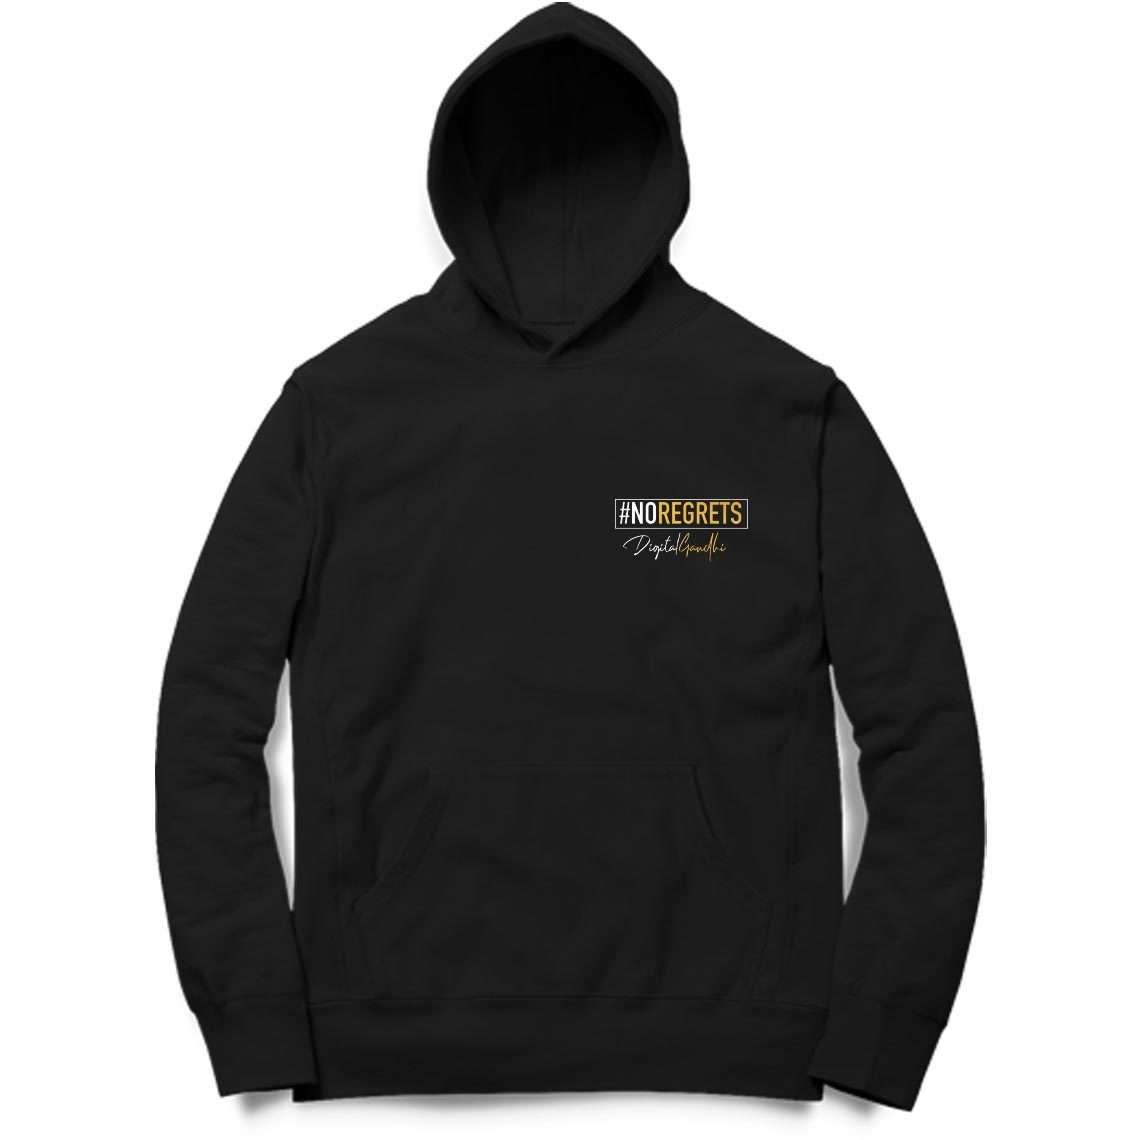 No Regrets Special Hoodie by Digital Gandhi - Good Network by Digital Gandhi Digital Gandhi ,